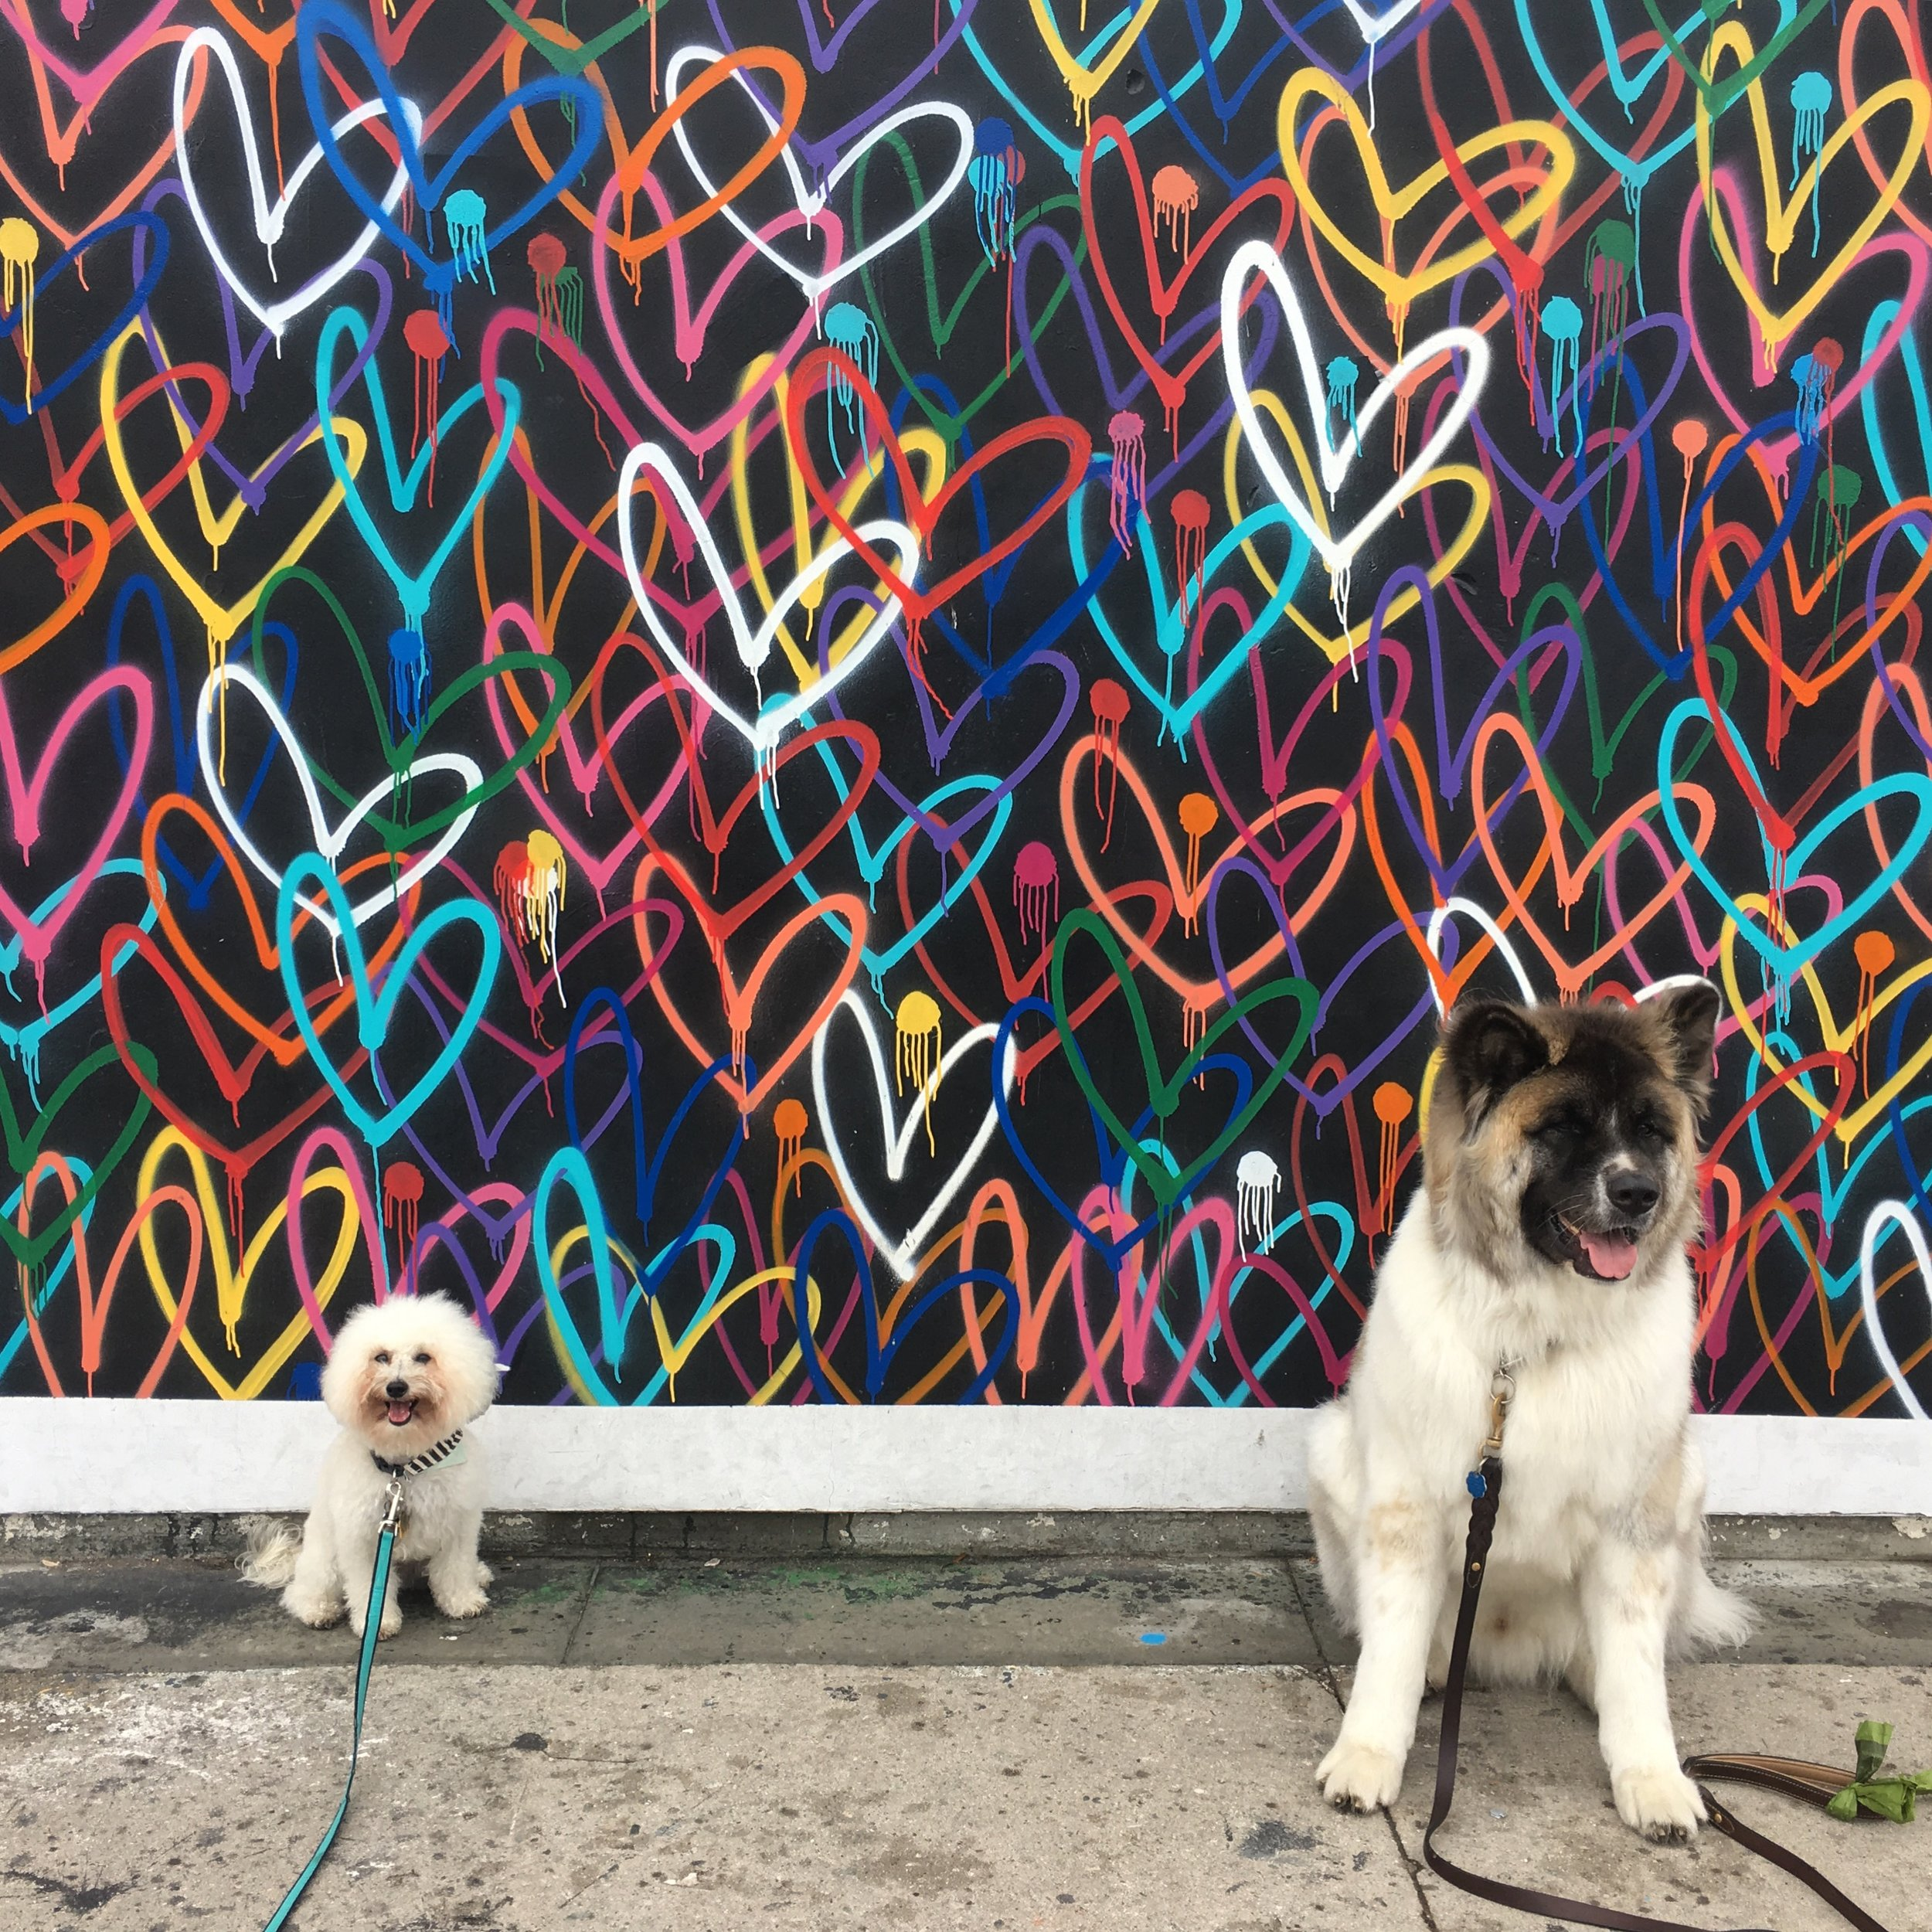 Two cute fluffy dogs, Akita and a bichon, by a J Goldcrown Love Wall mural in Venice Beach, CA | Watson & Walls